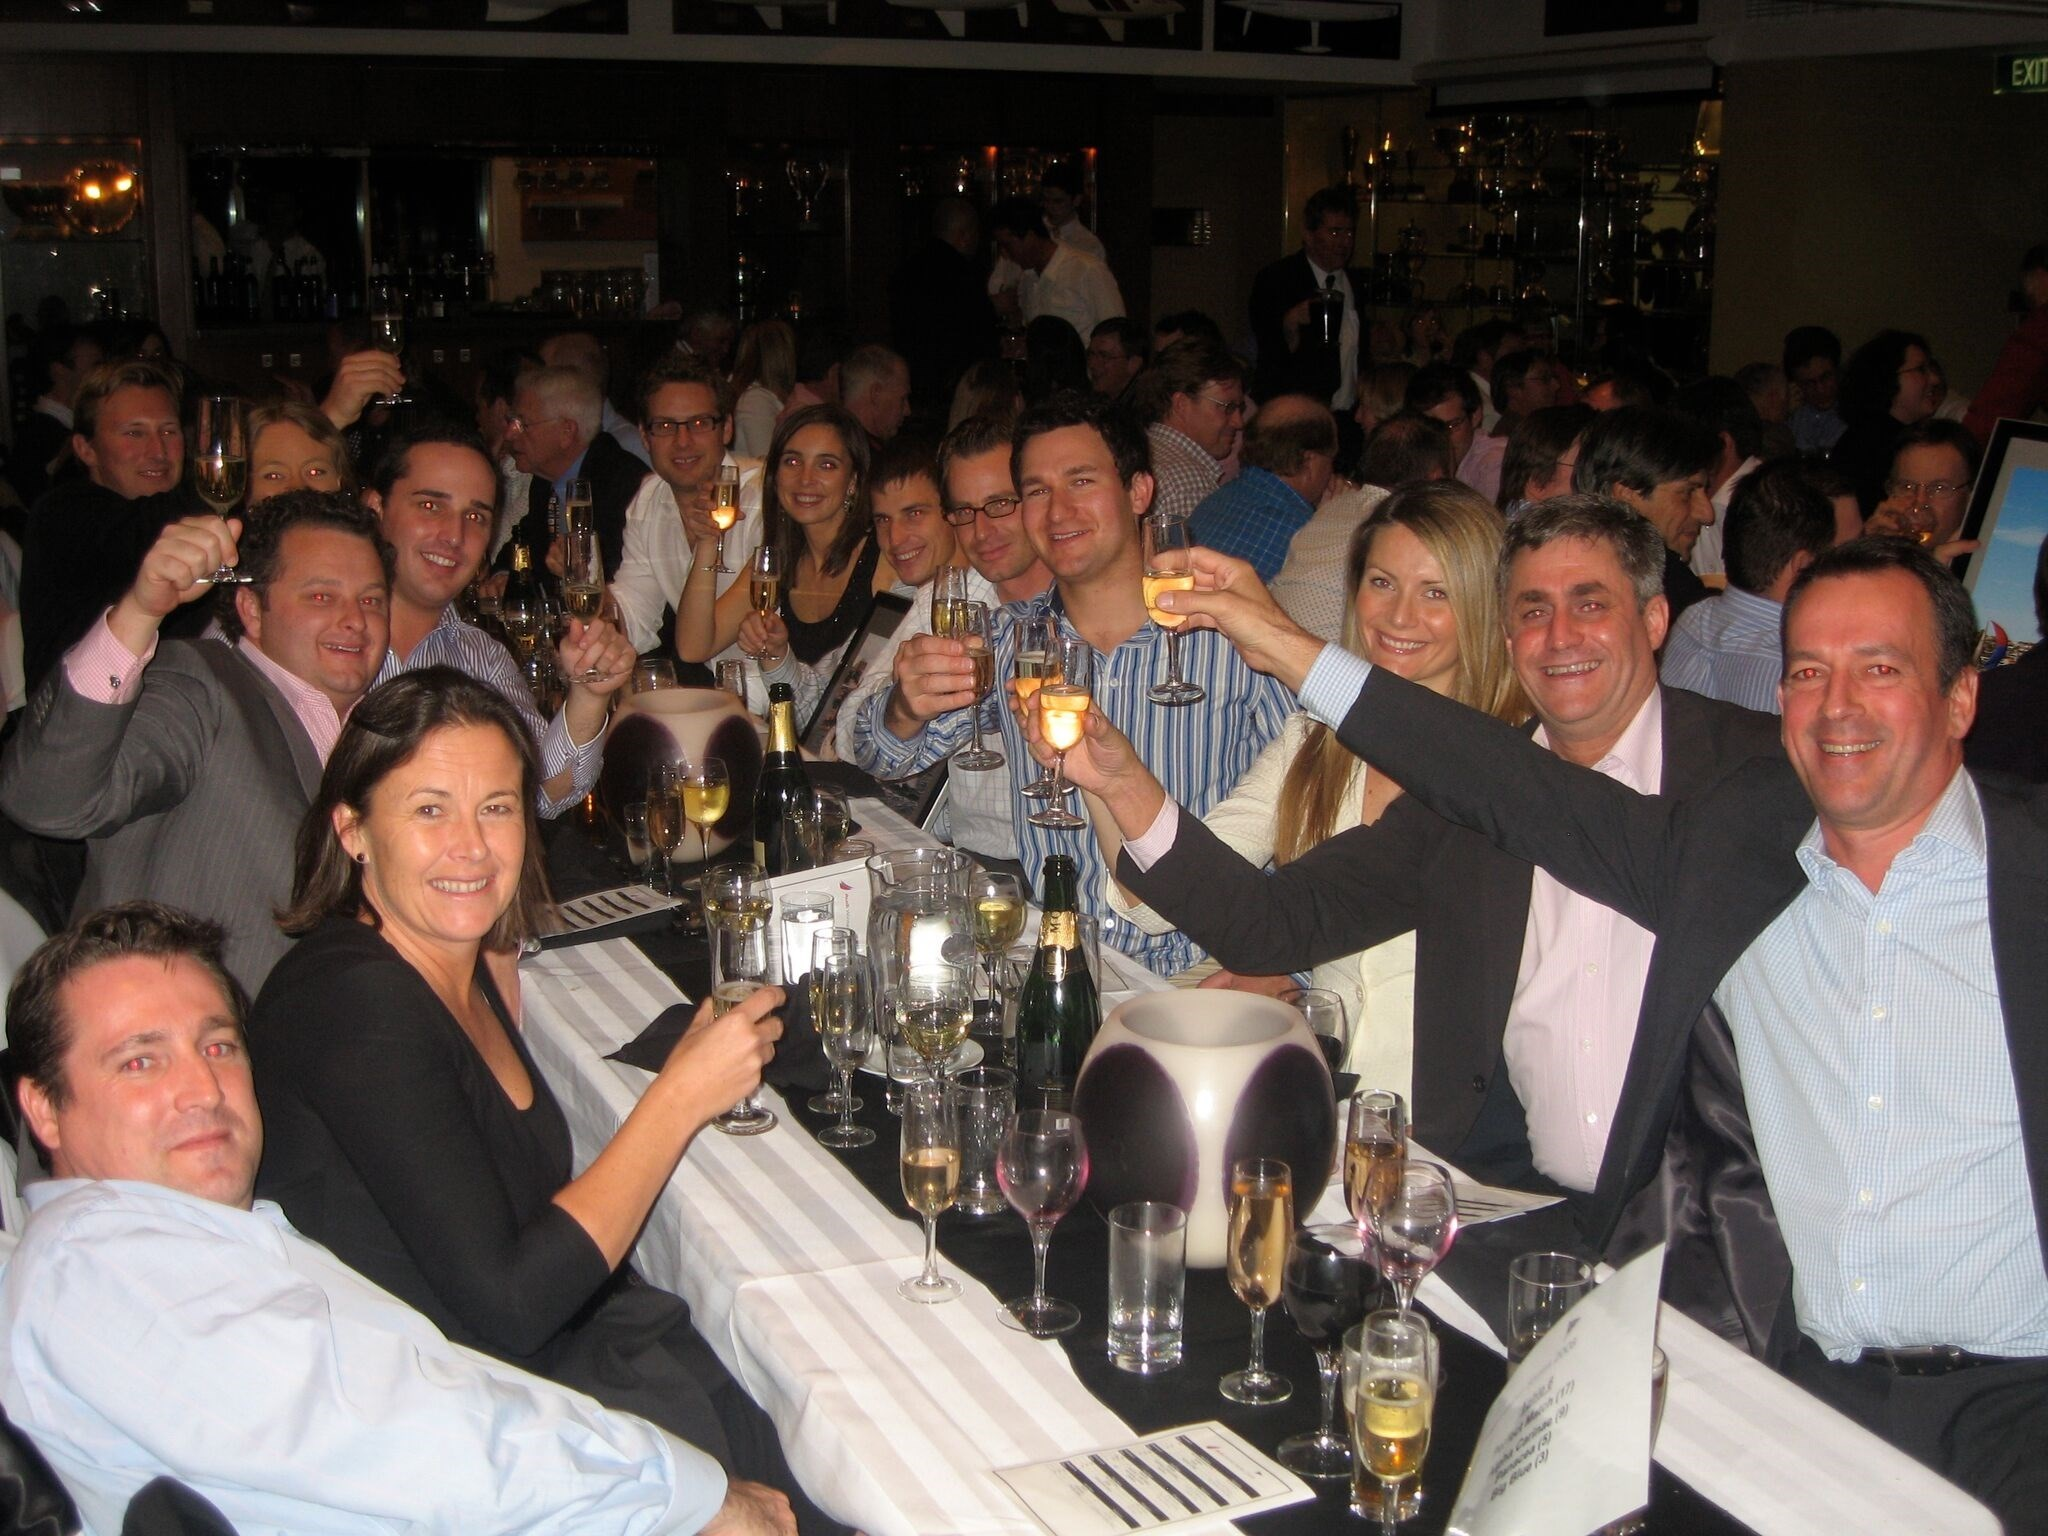 Quiet night out at a CYCA dinner!